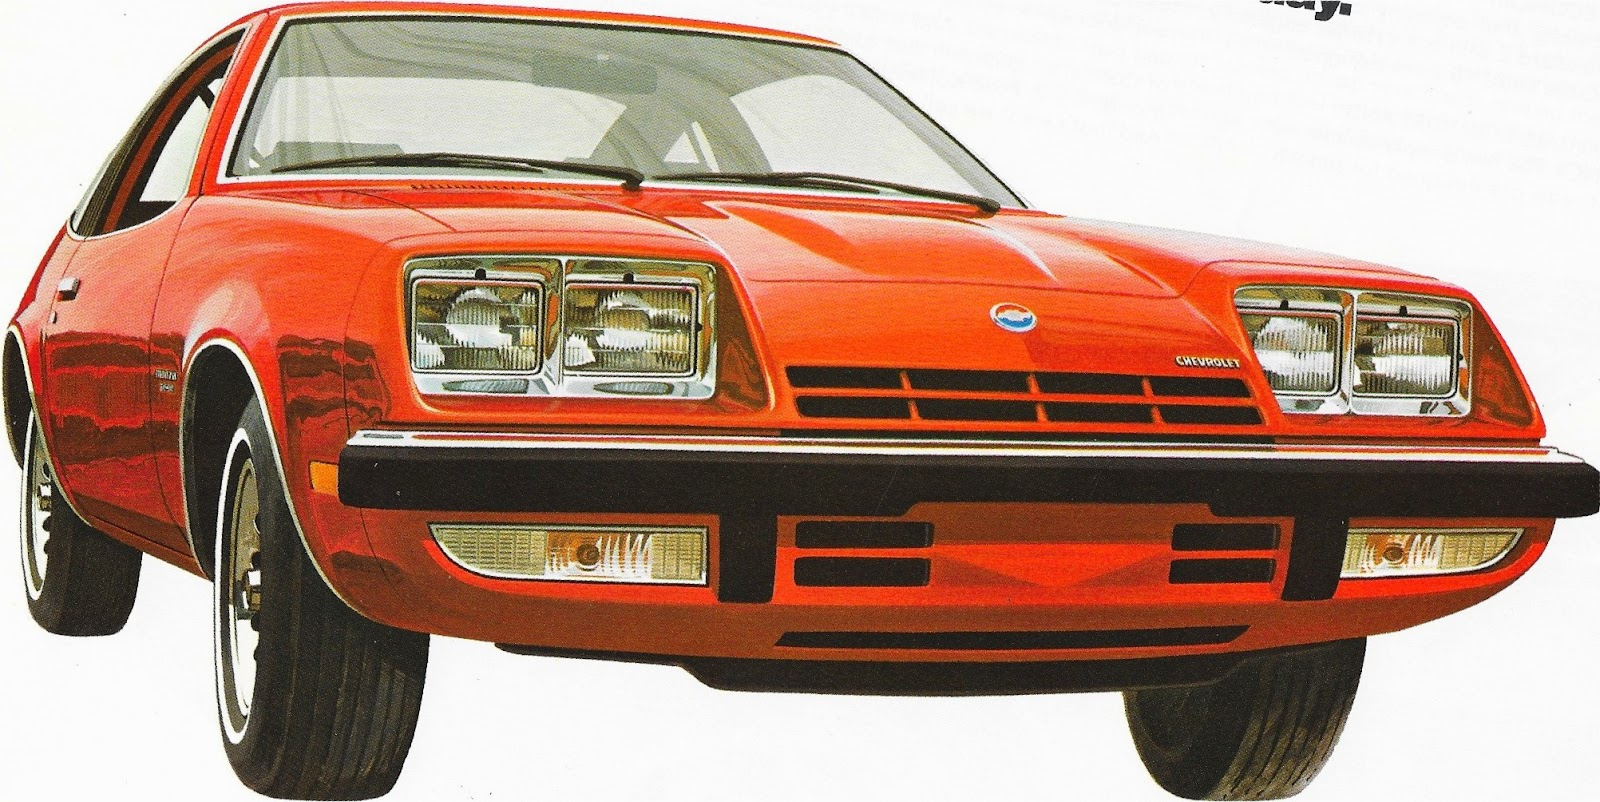 Old Cars Canada: 1975 Chevrolet Monza 2+2